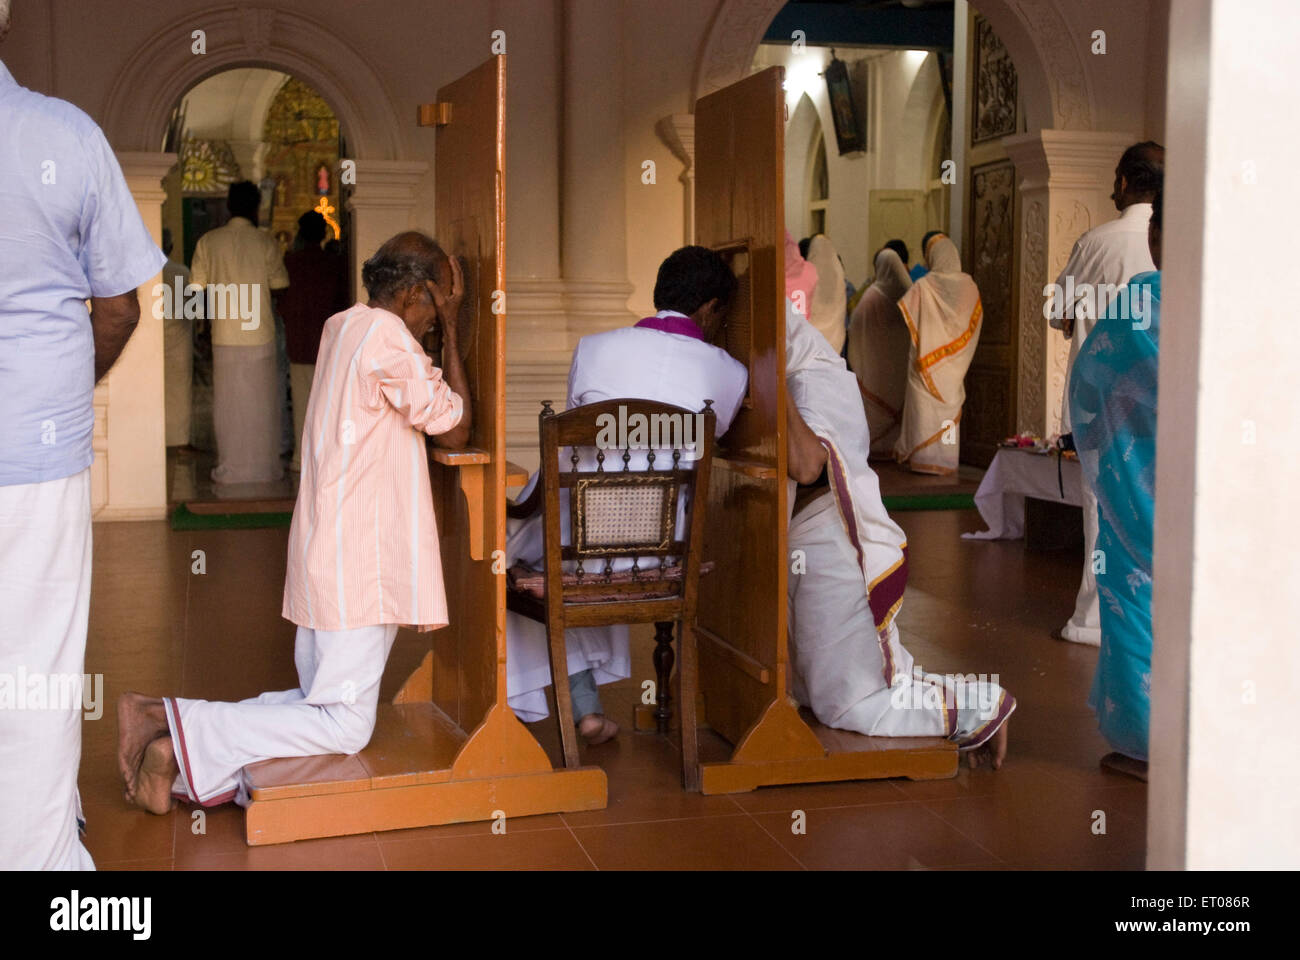 People making confession is Christian faith and practice Kerala India - Stock Image